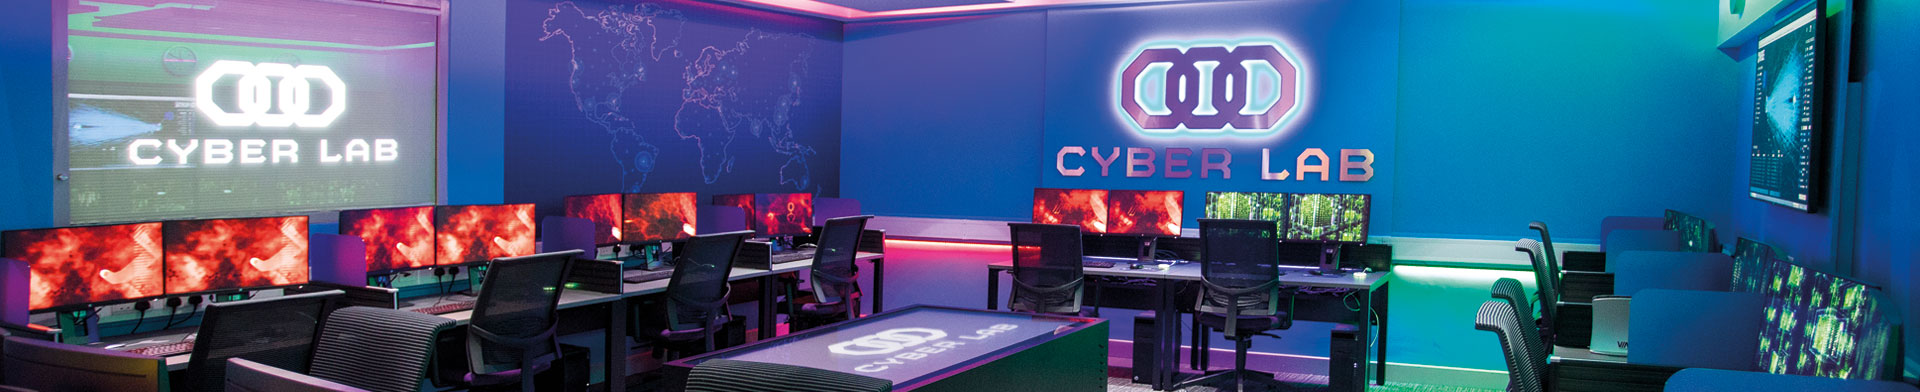 Cyberlab wide angle